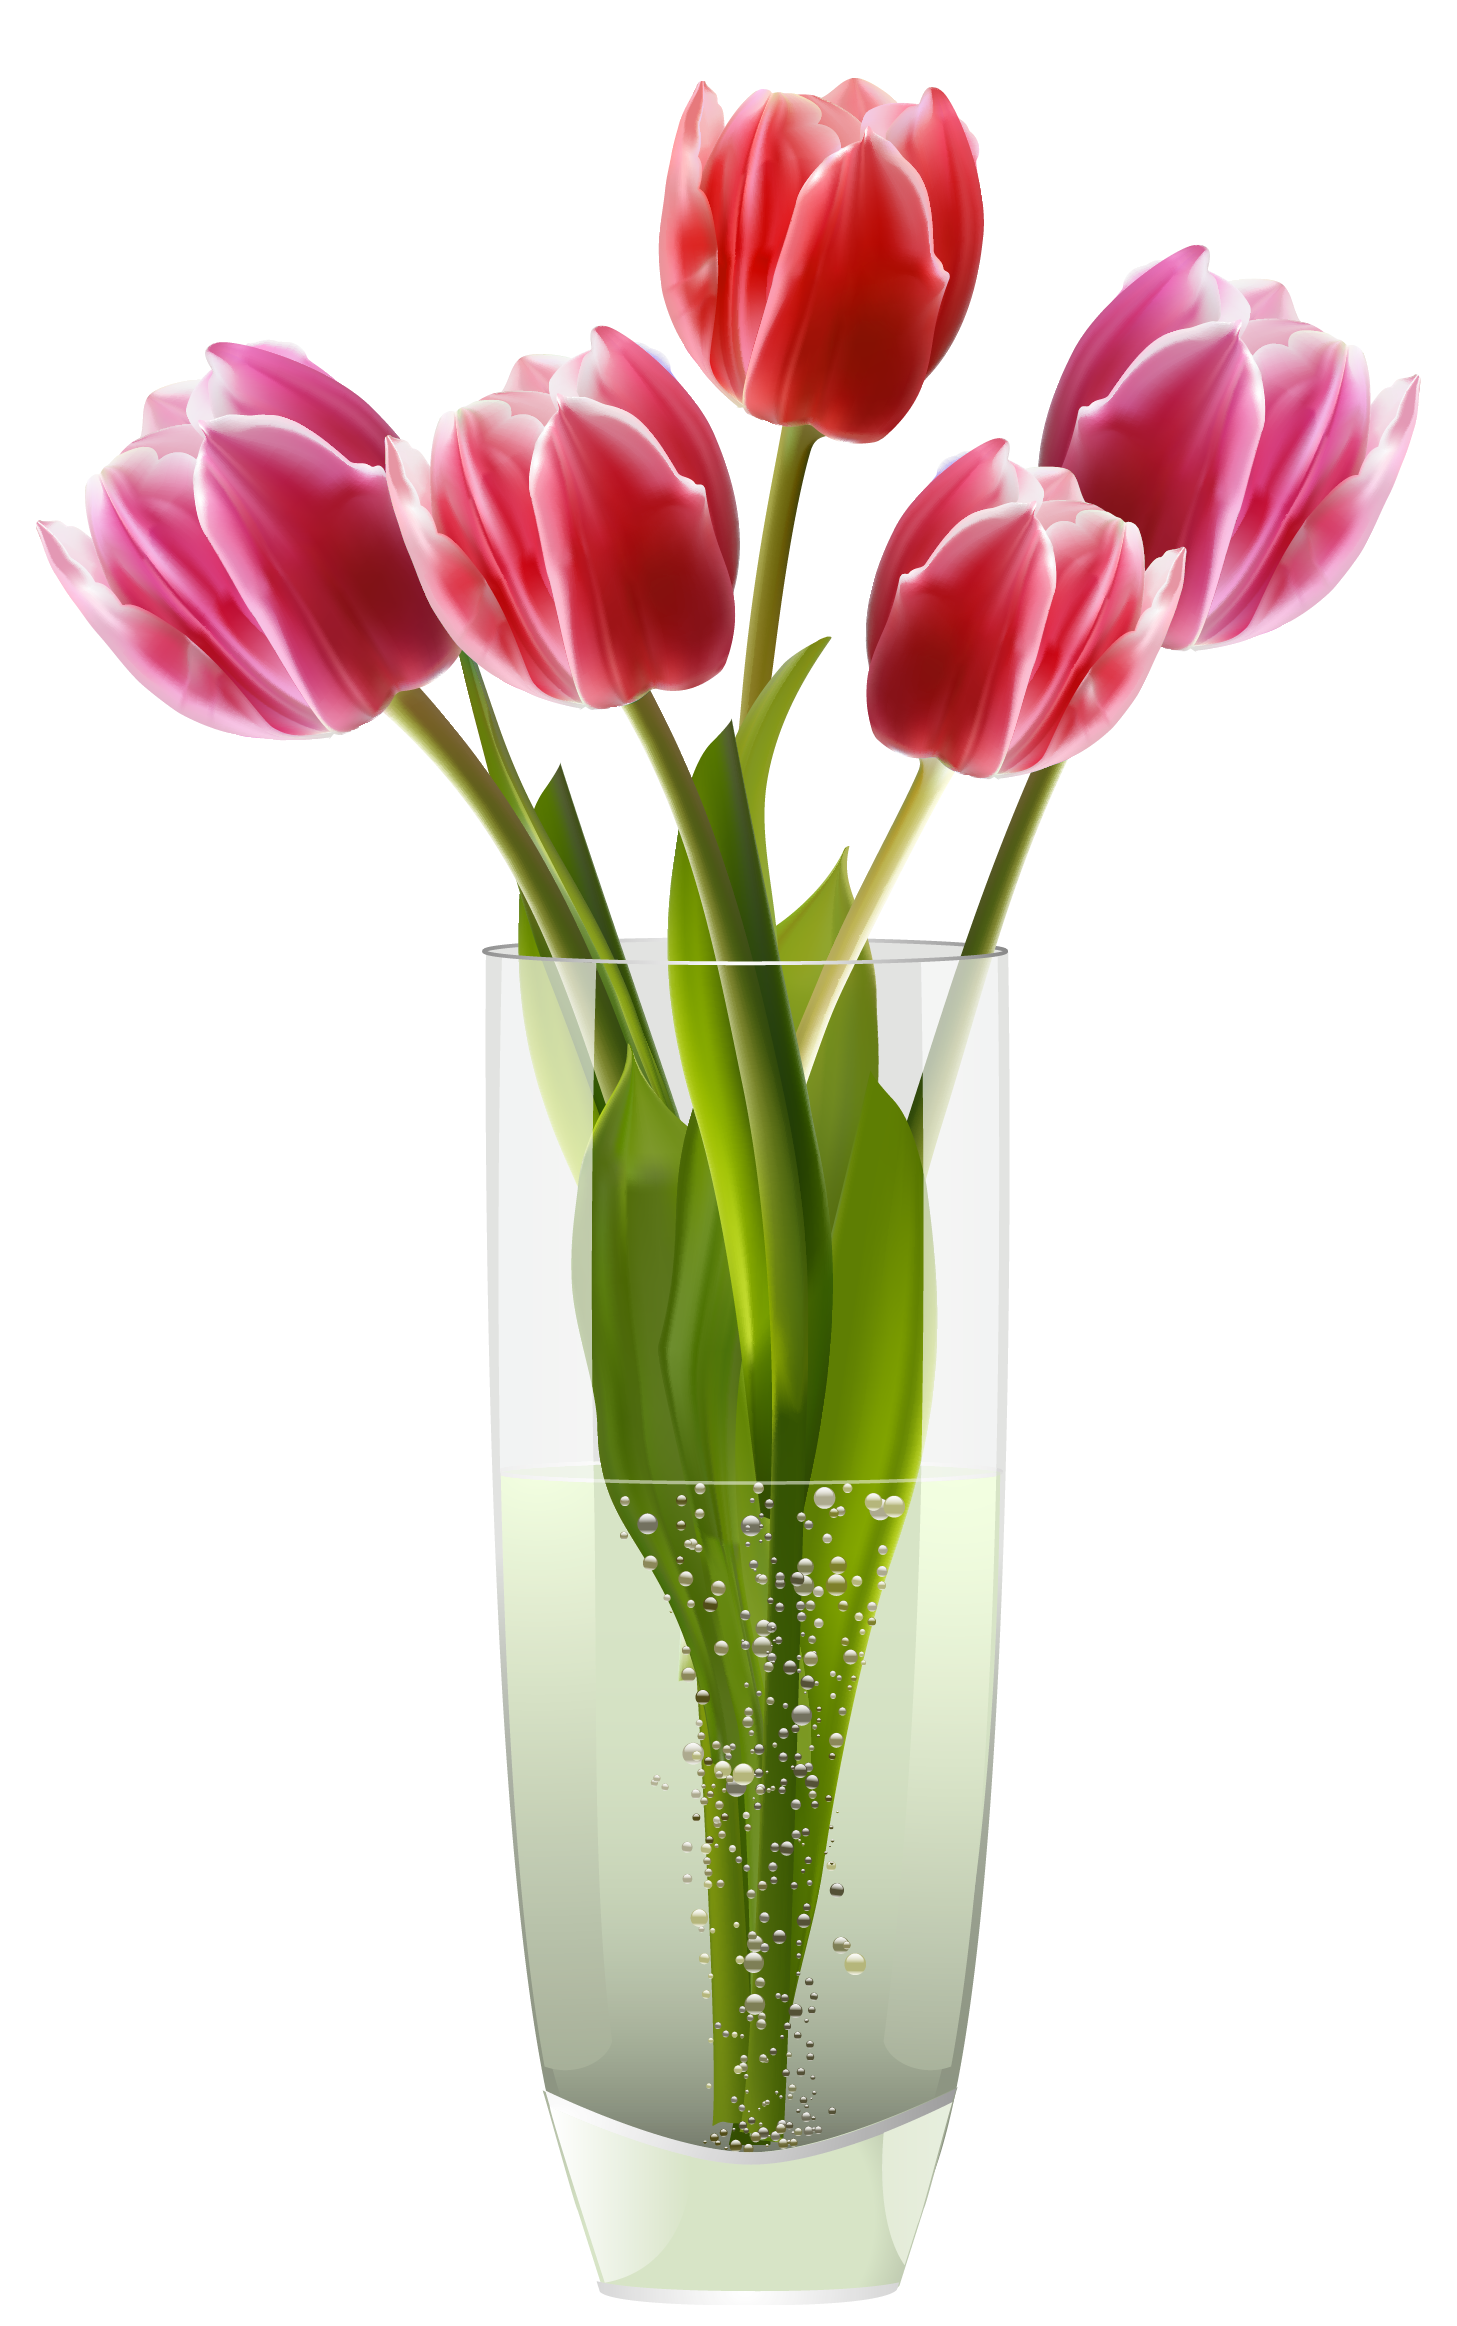 Flowers In Vase Google Suche Flowers Pinterest Red